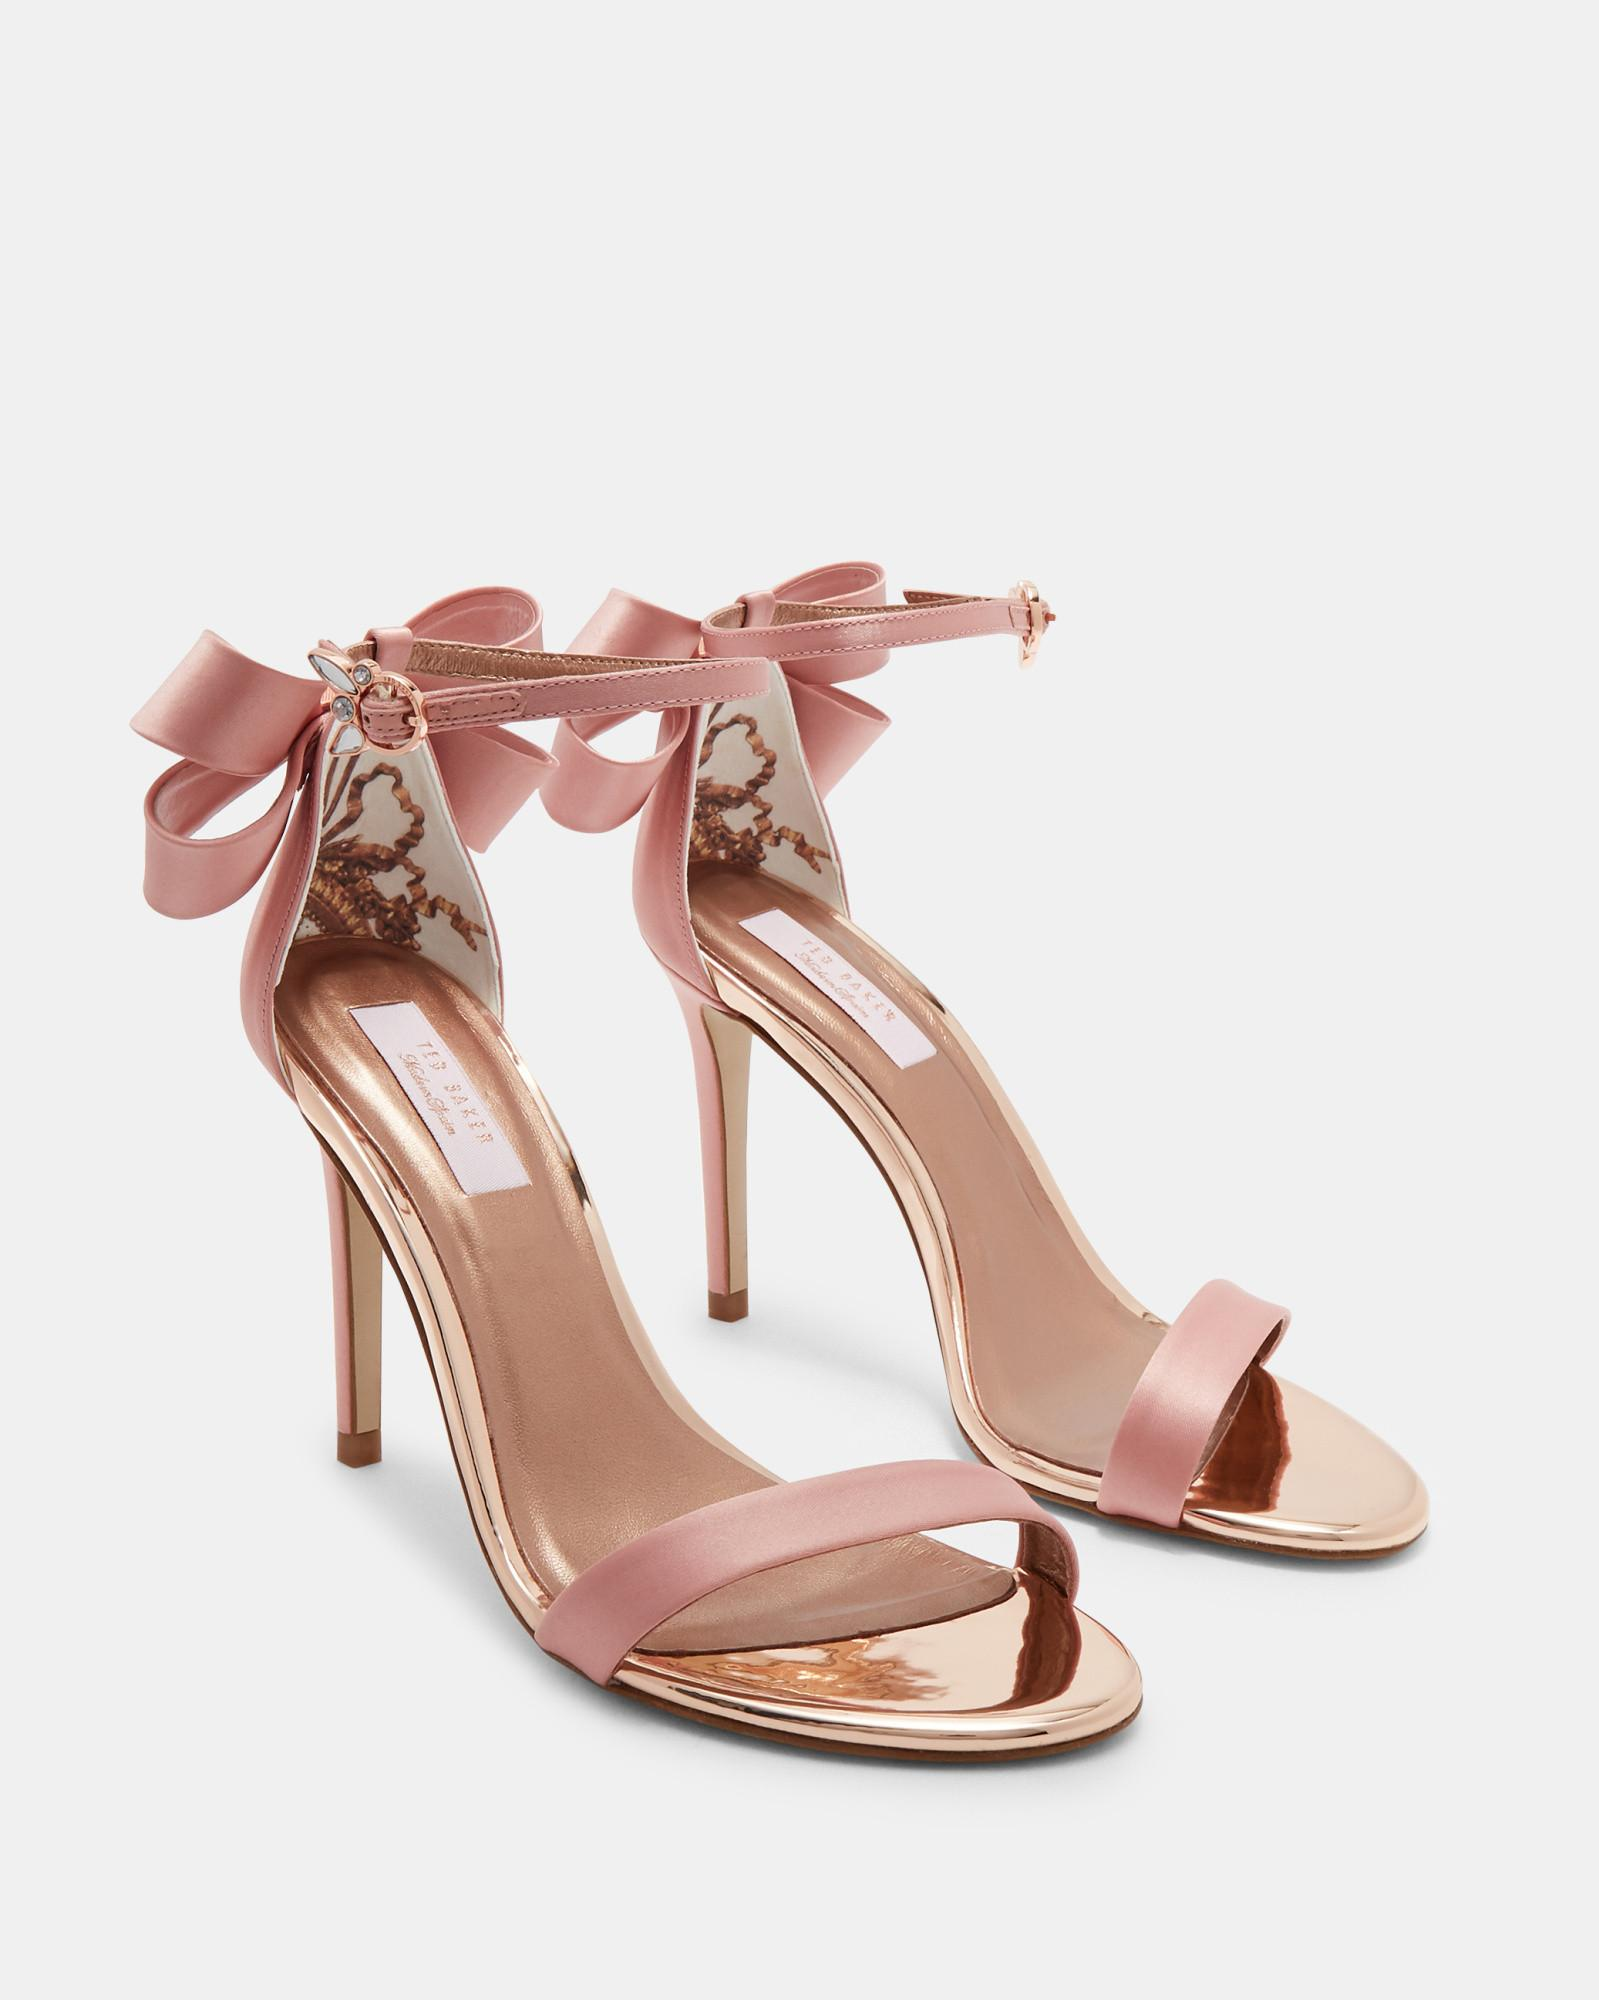 a86f898b113 Ted Baker Bow Detail Heeled Sandals in Pink - Lyst